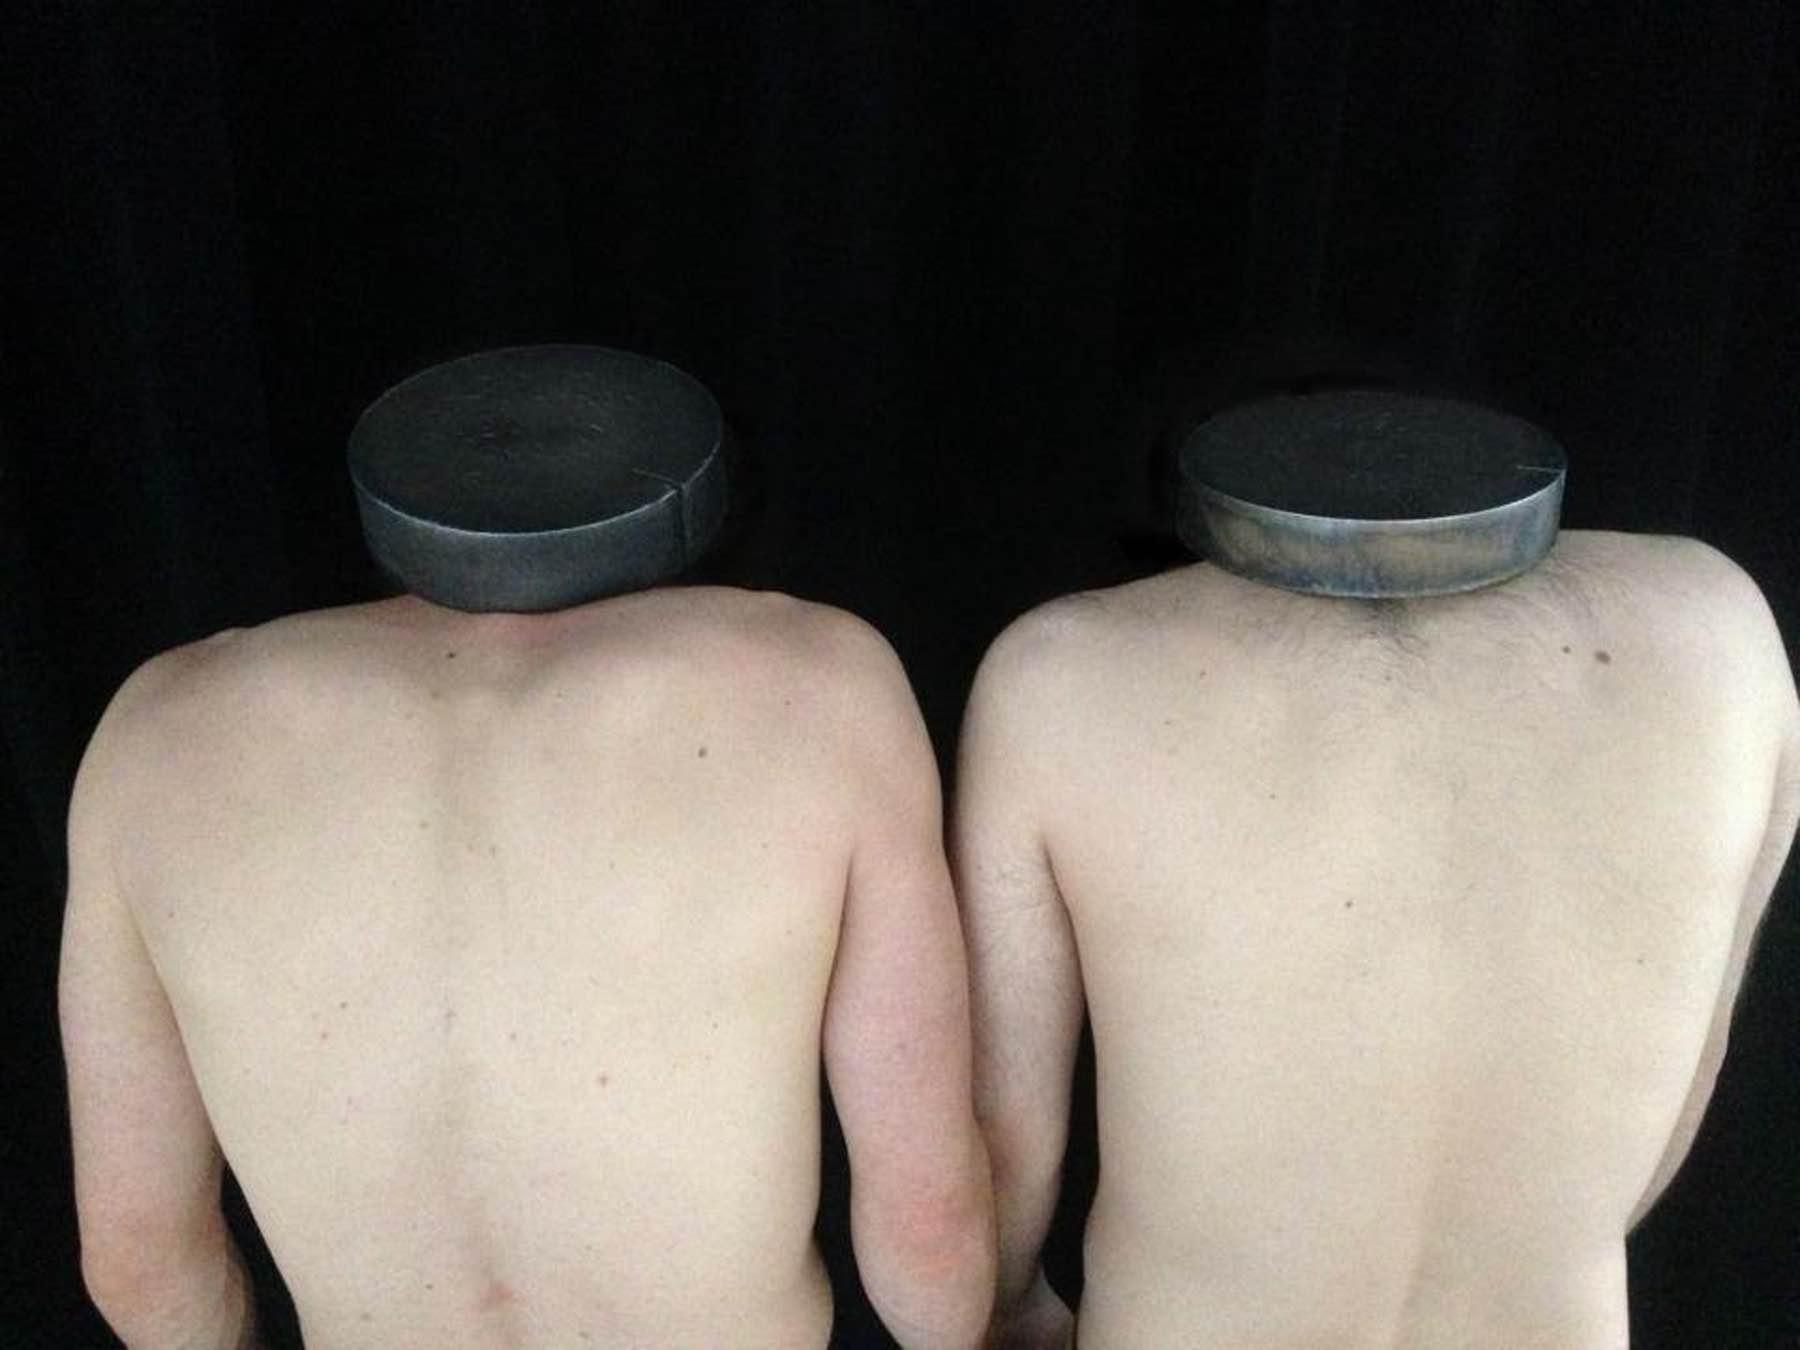 Photograph of two nude headless male torsos seen from behind against a black background. Round metal discs rest on their shoulder in place of heads.